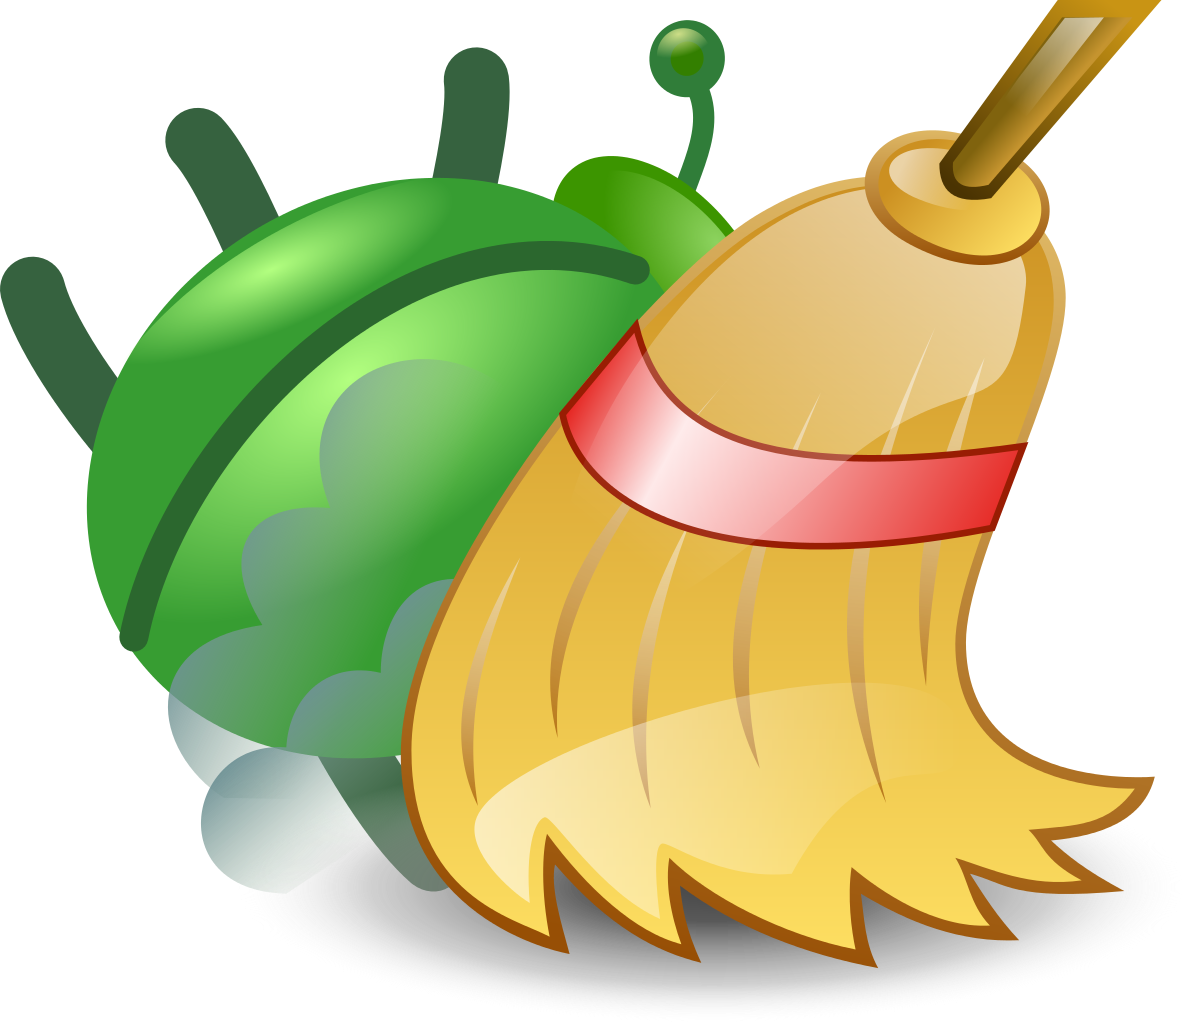 Green bug swept up. Fall clipart sweeping leave